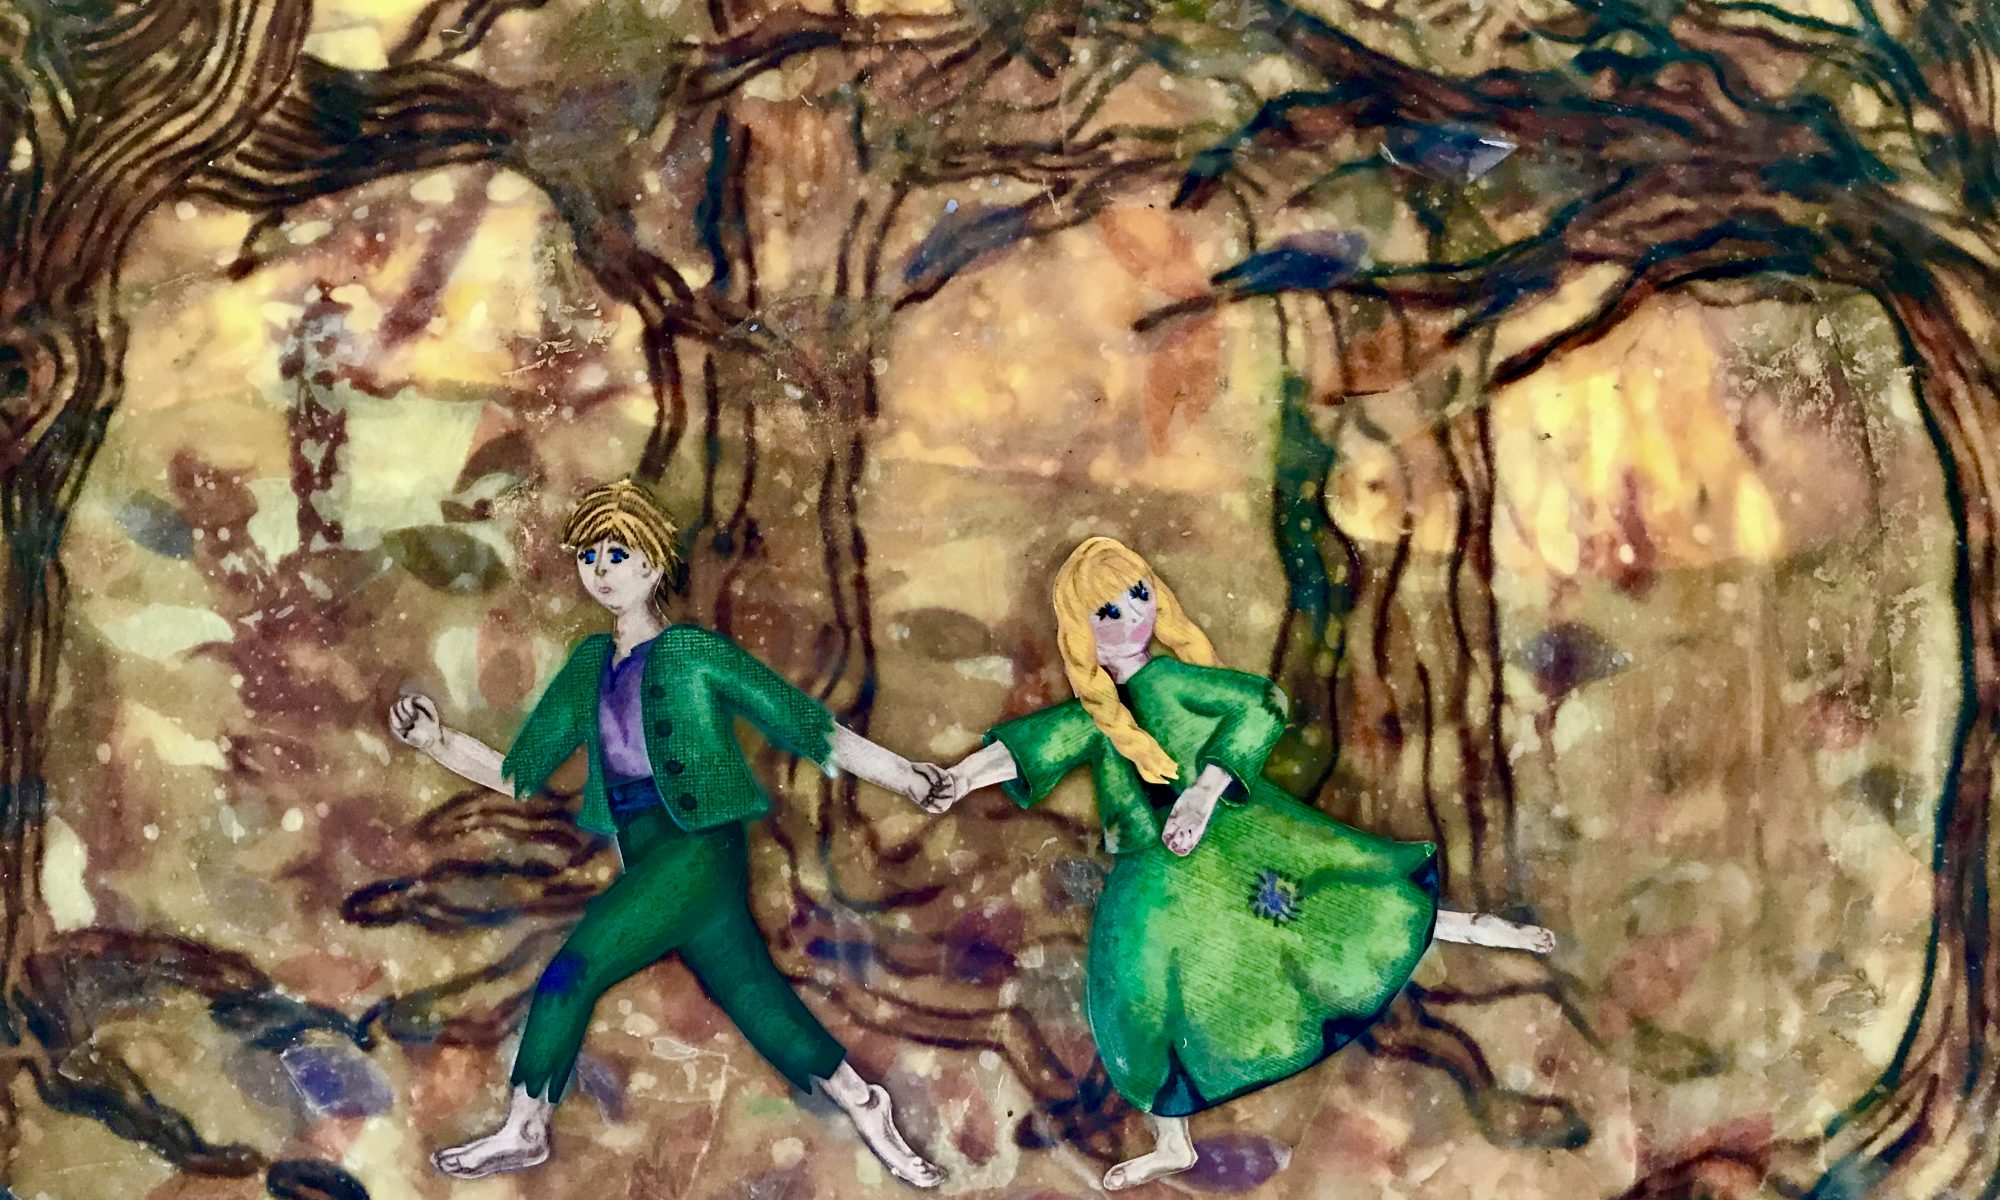 Hansel and Gretel running through the woods. Encaustic with silk, paper, pen, colored pencils. Original mixed media by Anna Loscotoff.